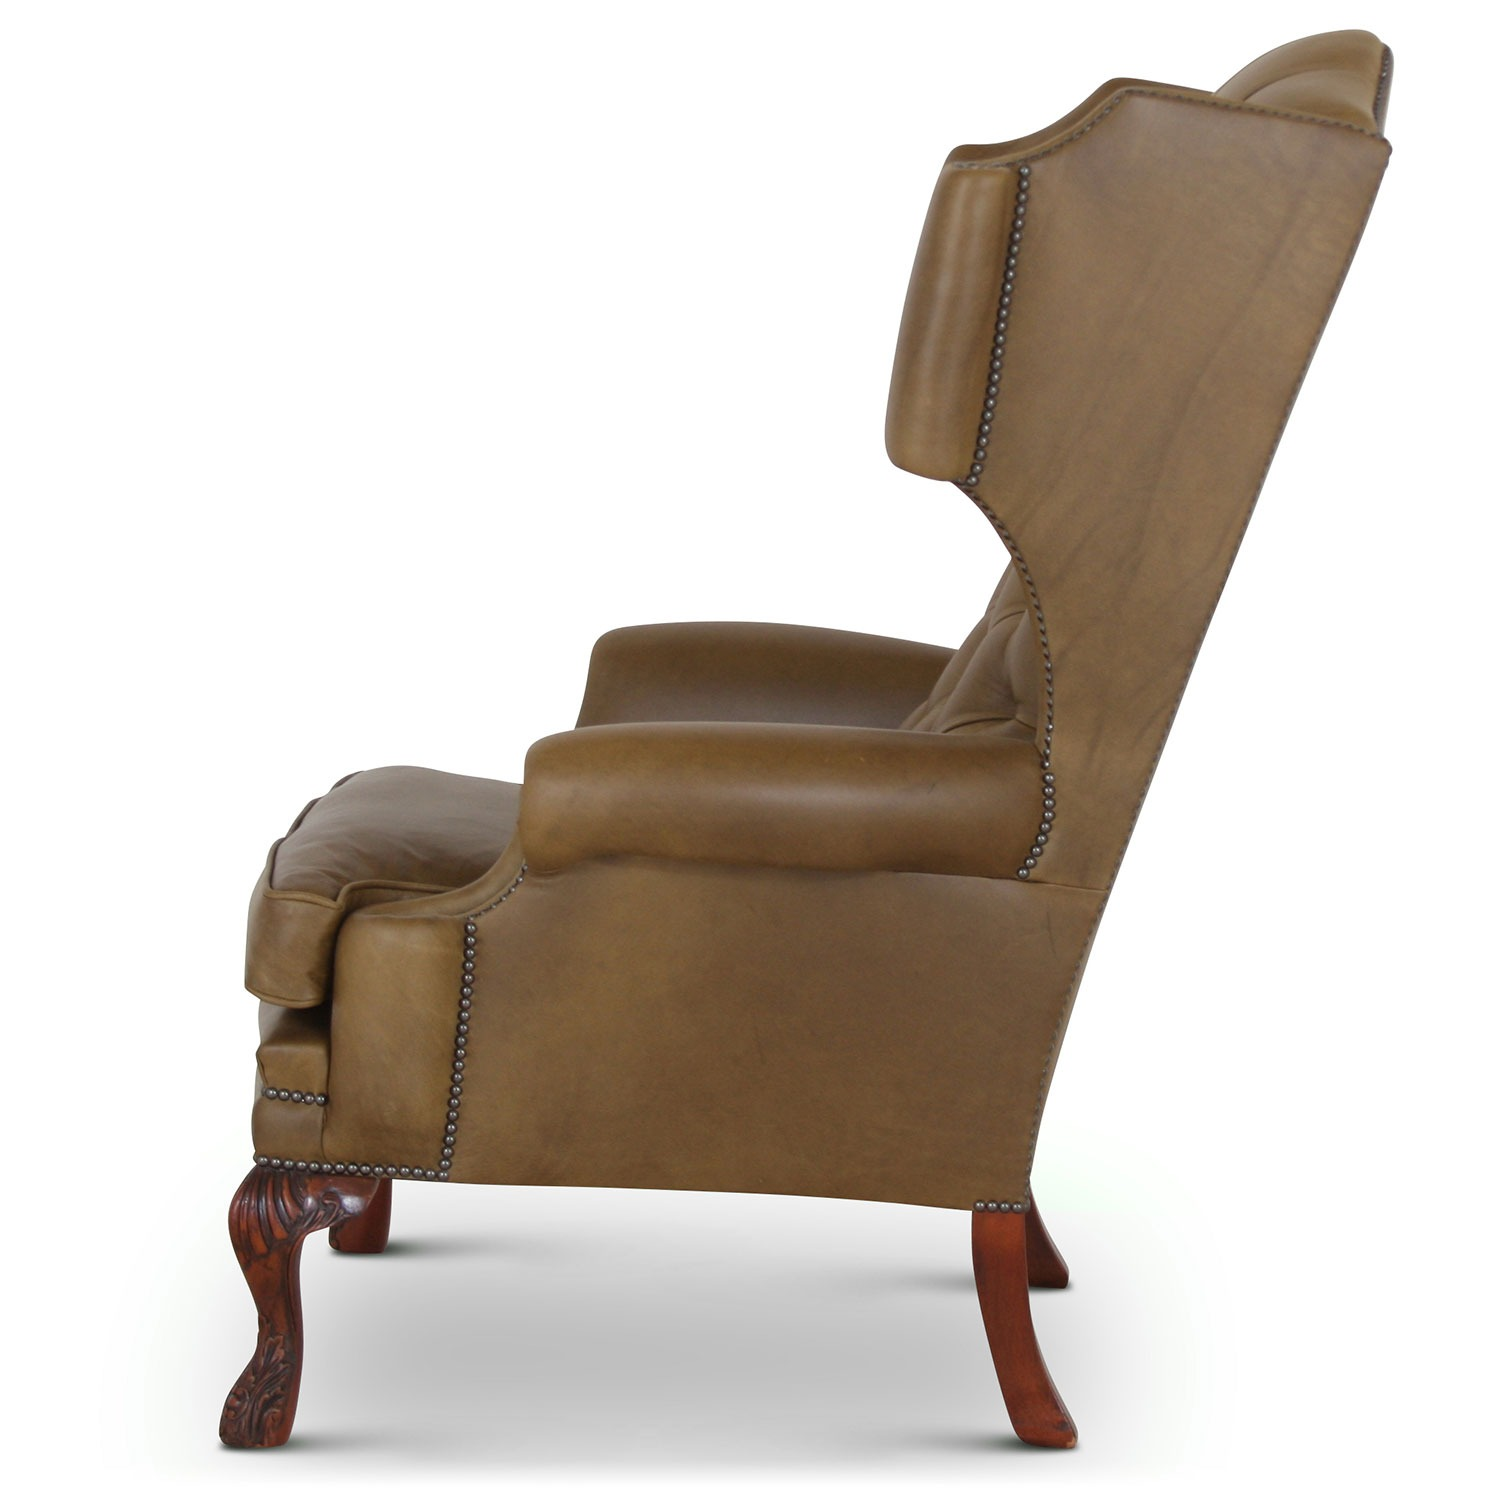 Elizabethan wing chair in olive leather